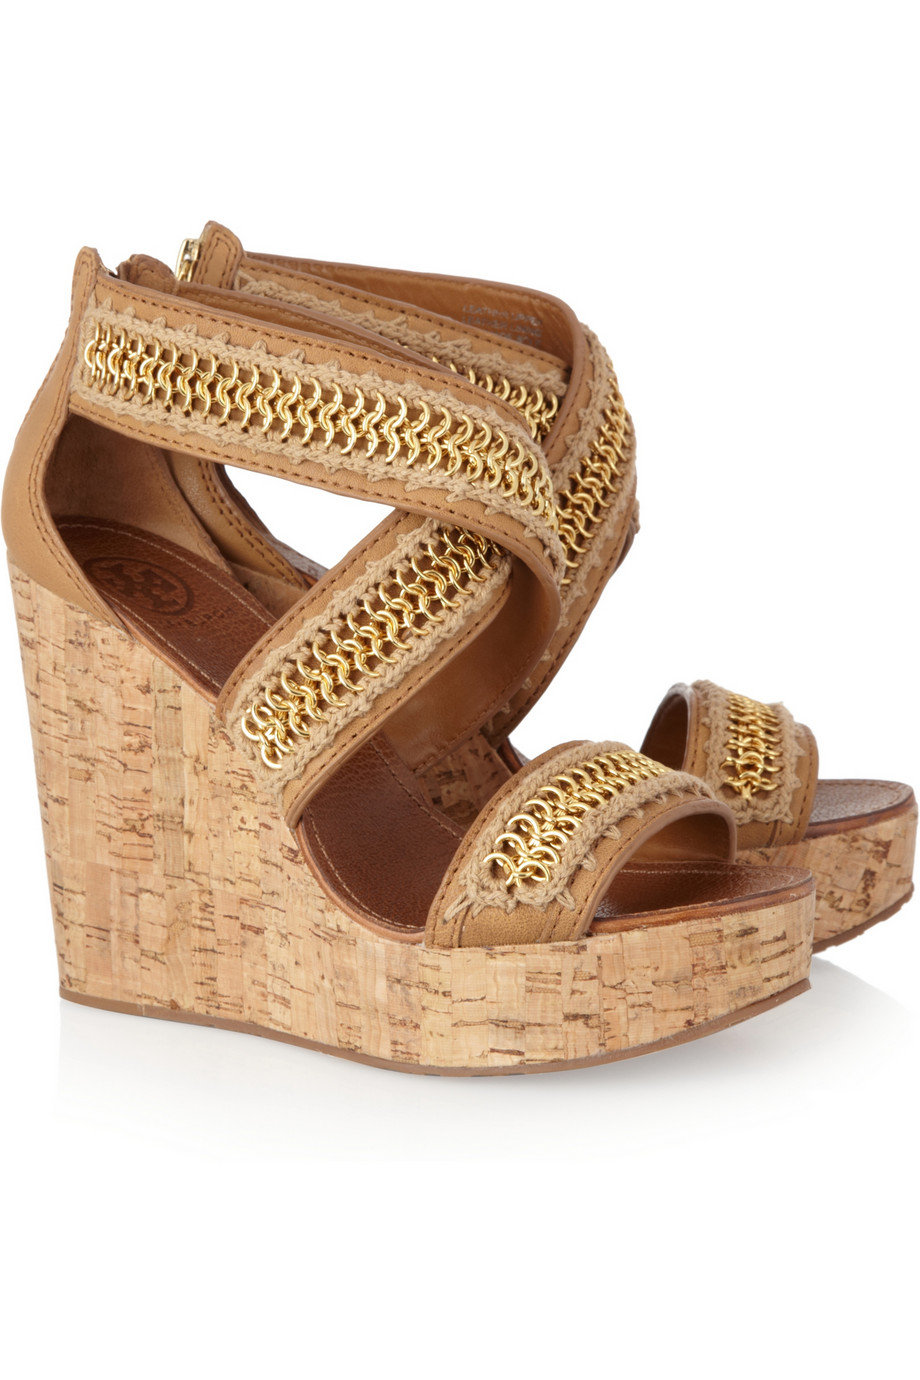 Lyst Tory Burch Lucian Leather And Cork Wedge Sandals In